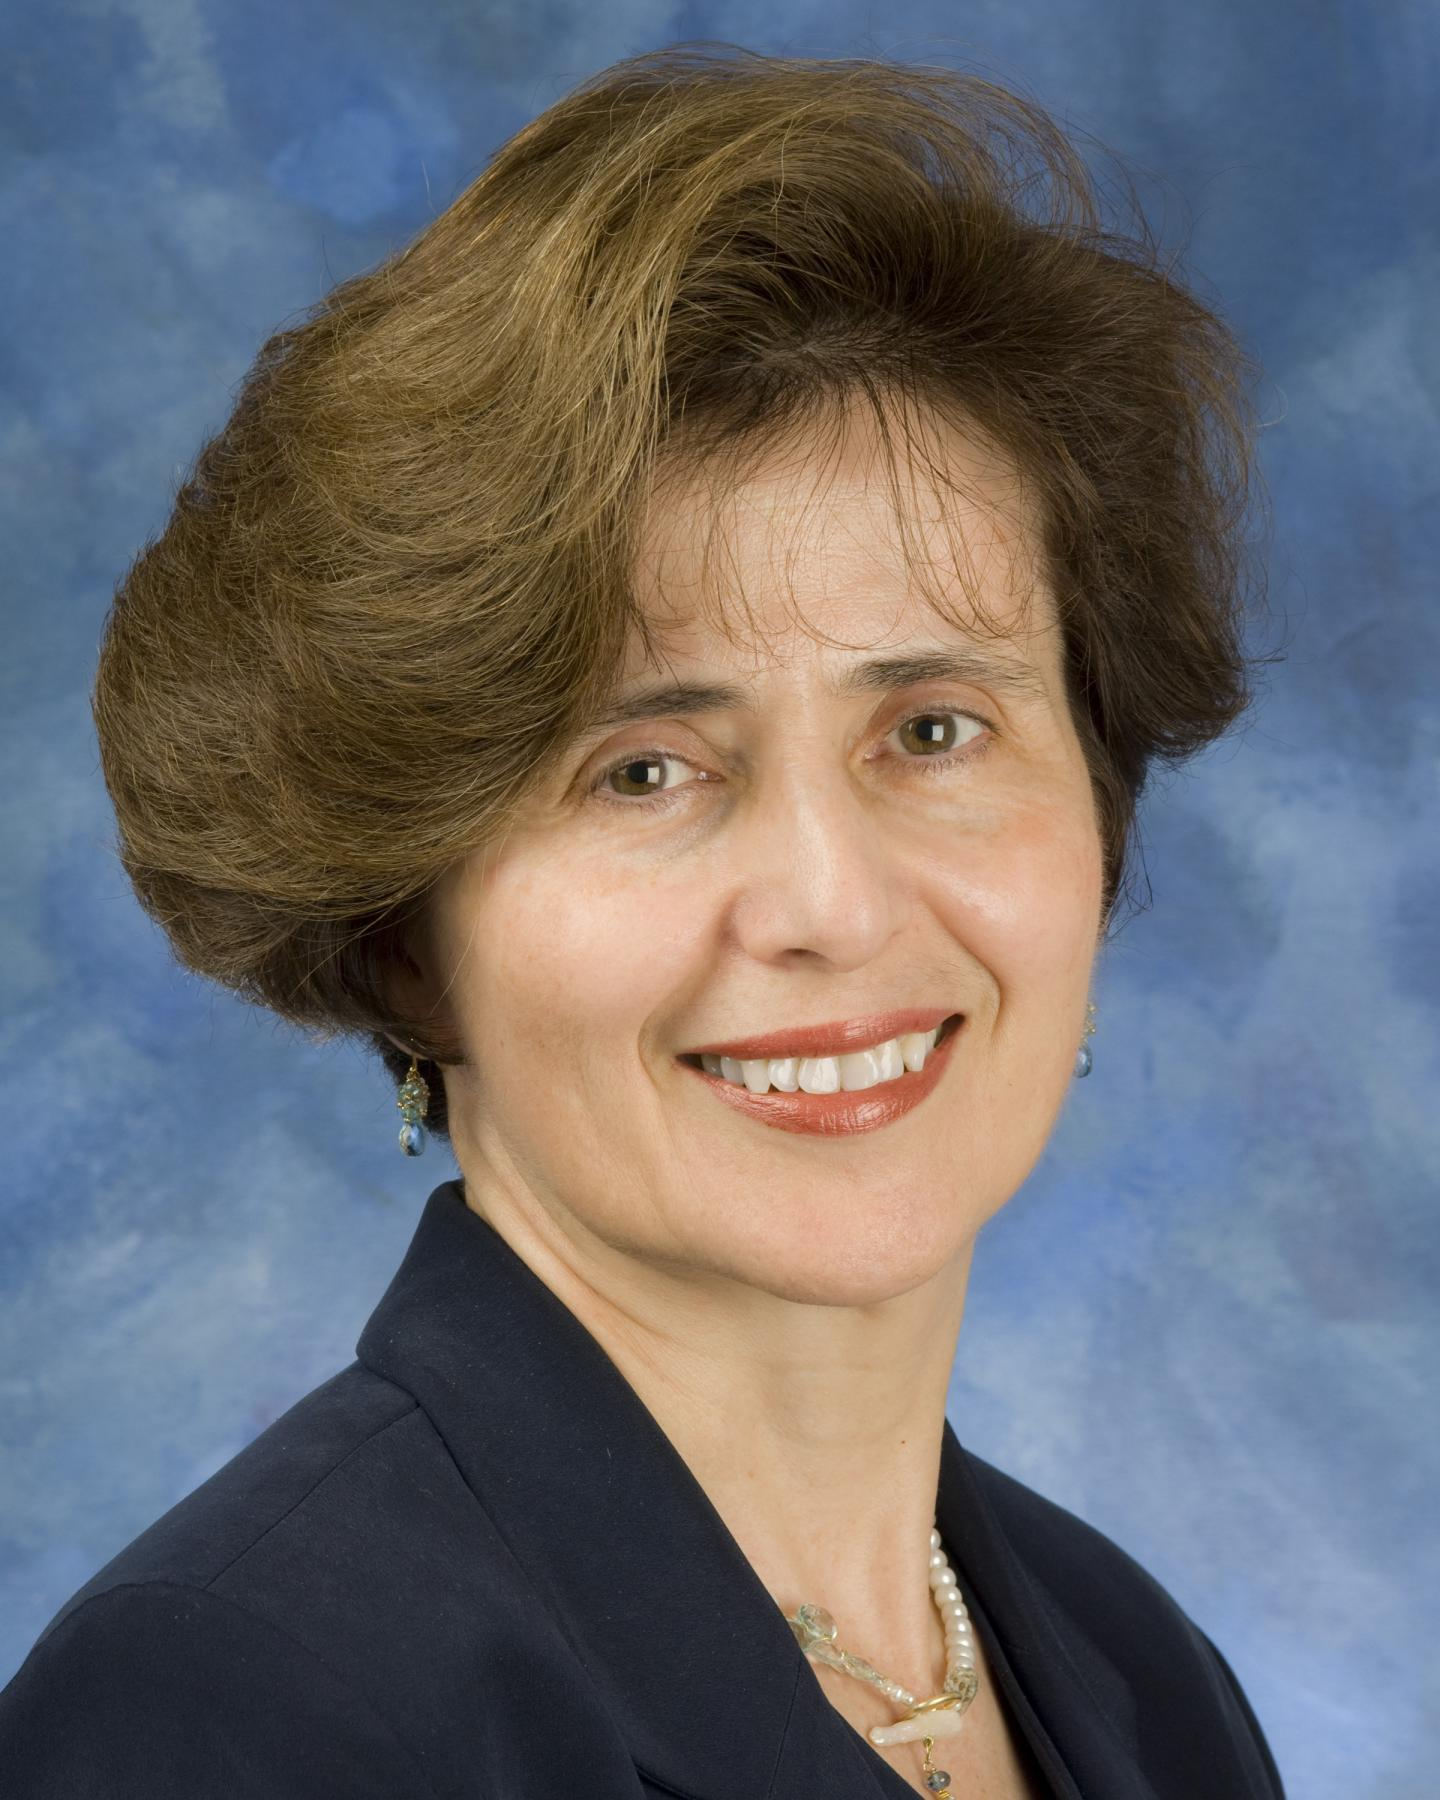 APS and SPR honor Dr. Stella Kourembanas with the 2020 Mary Ellen Avery Award